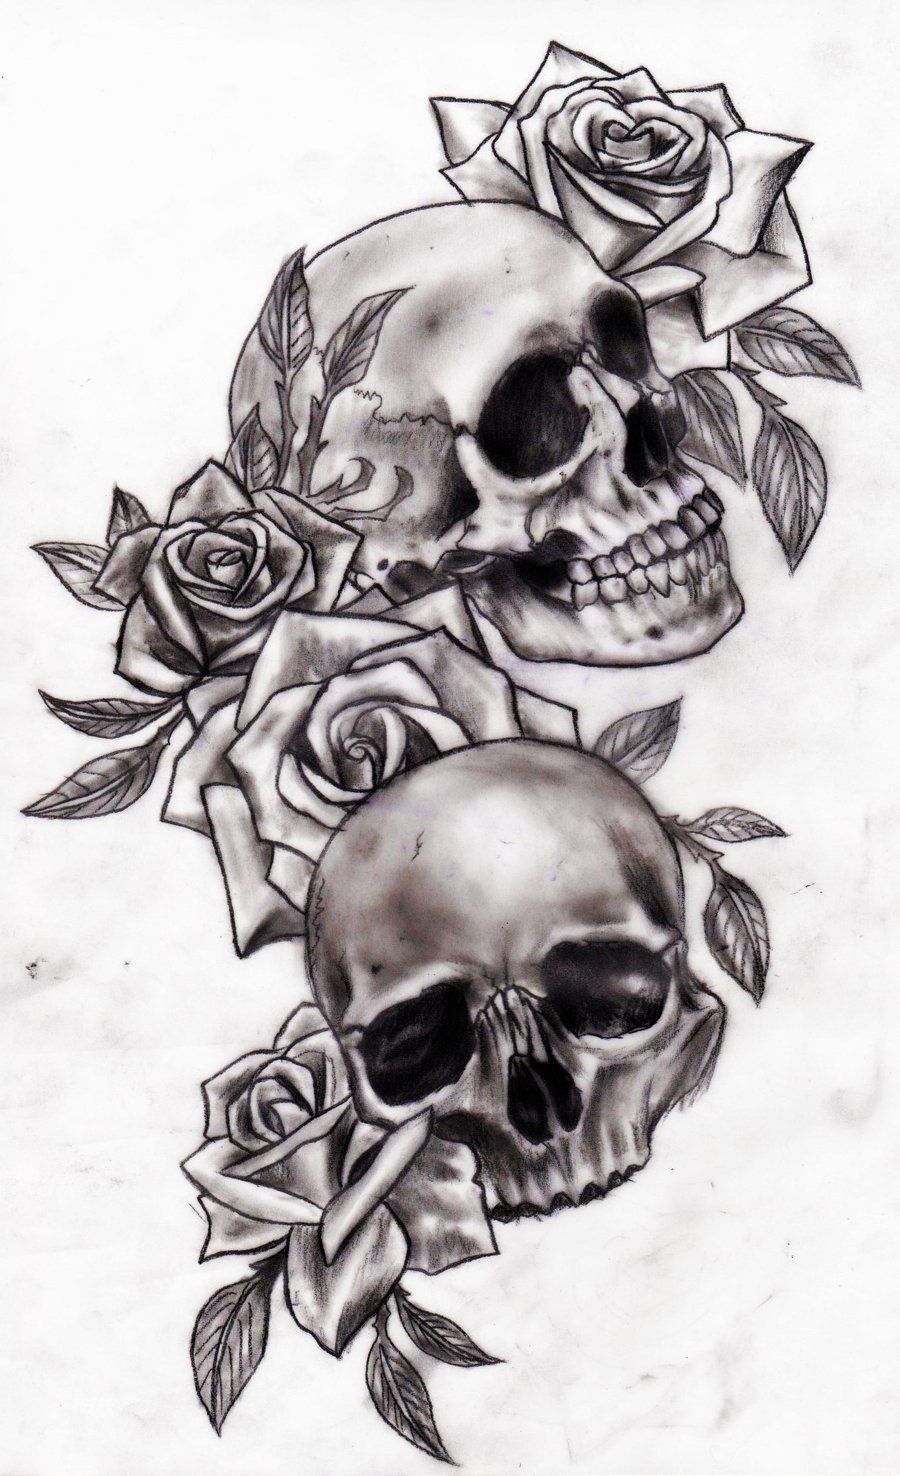 Tattoos for men praying hands skull and roses  tattoo  pinterest  deviantart and rose